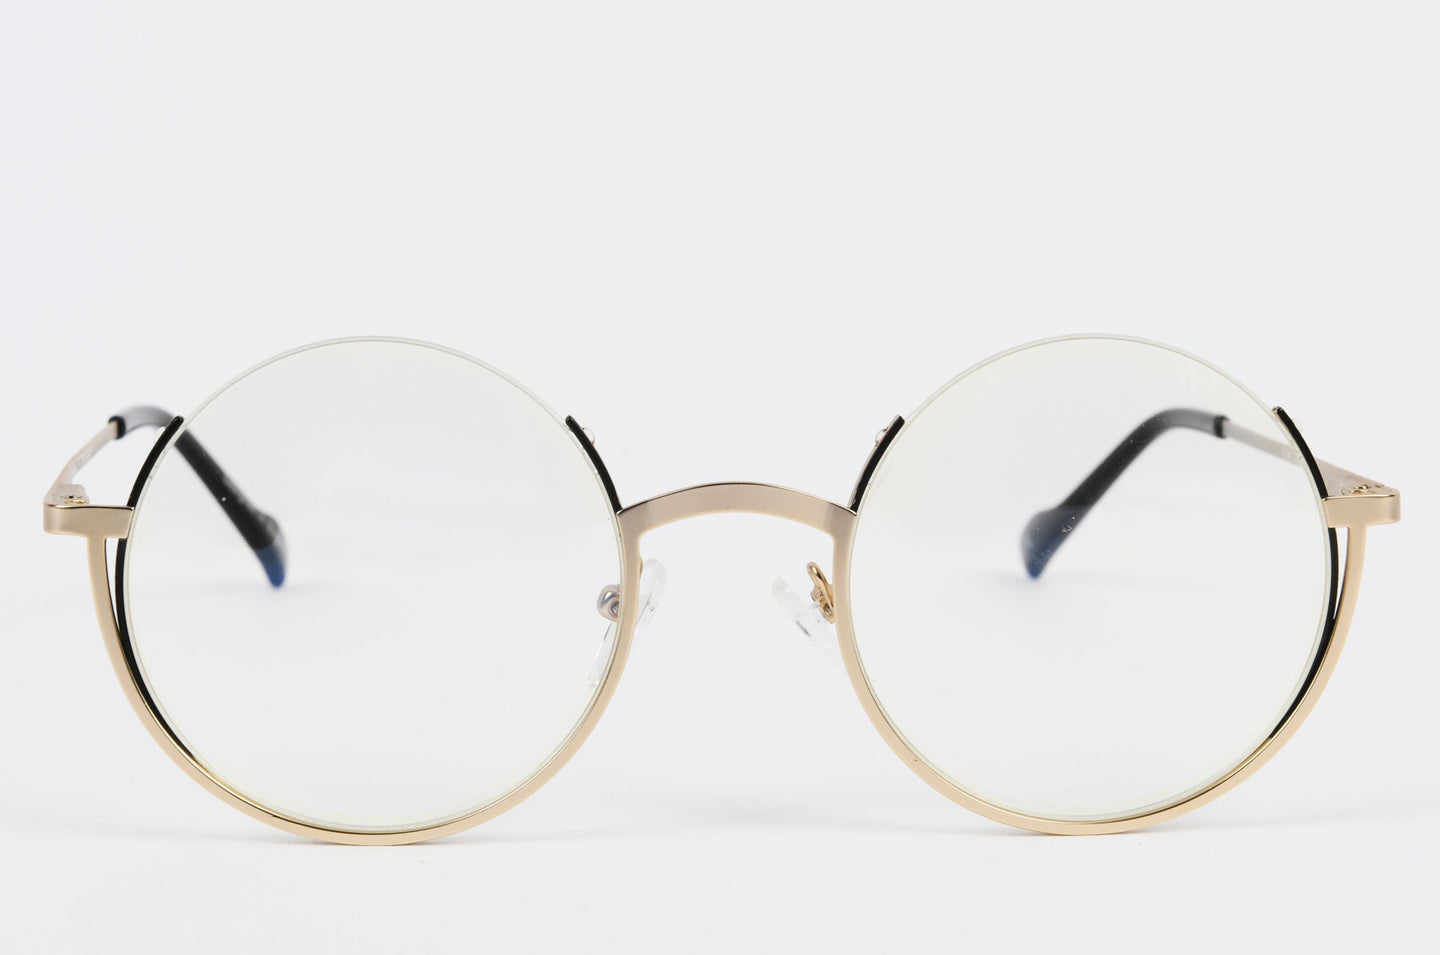 Round gold glasses frame with prescription lenses